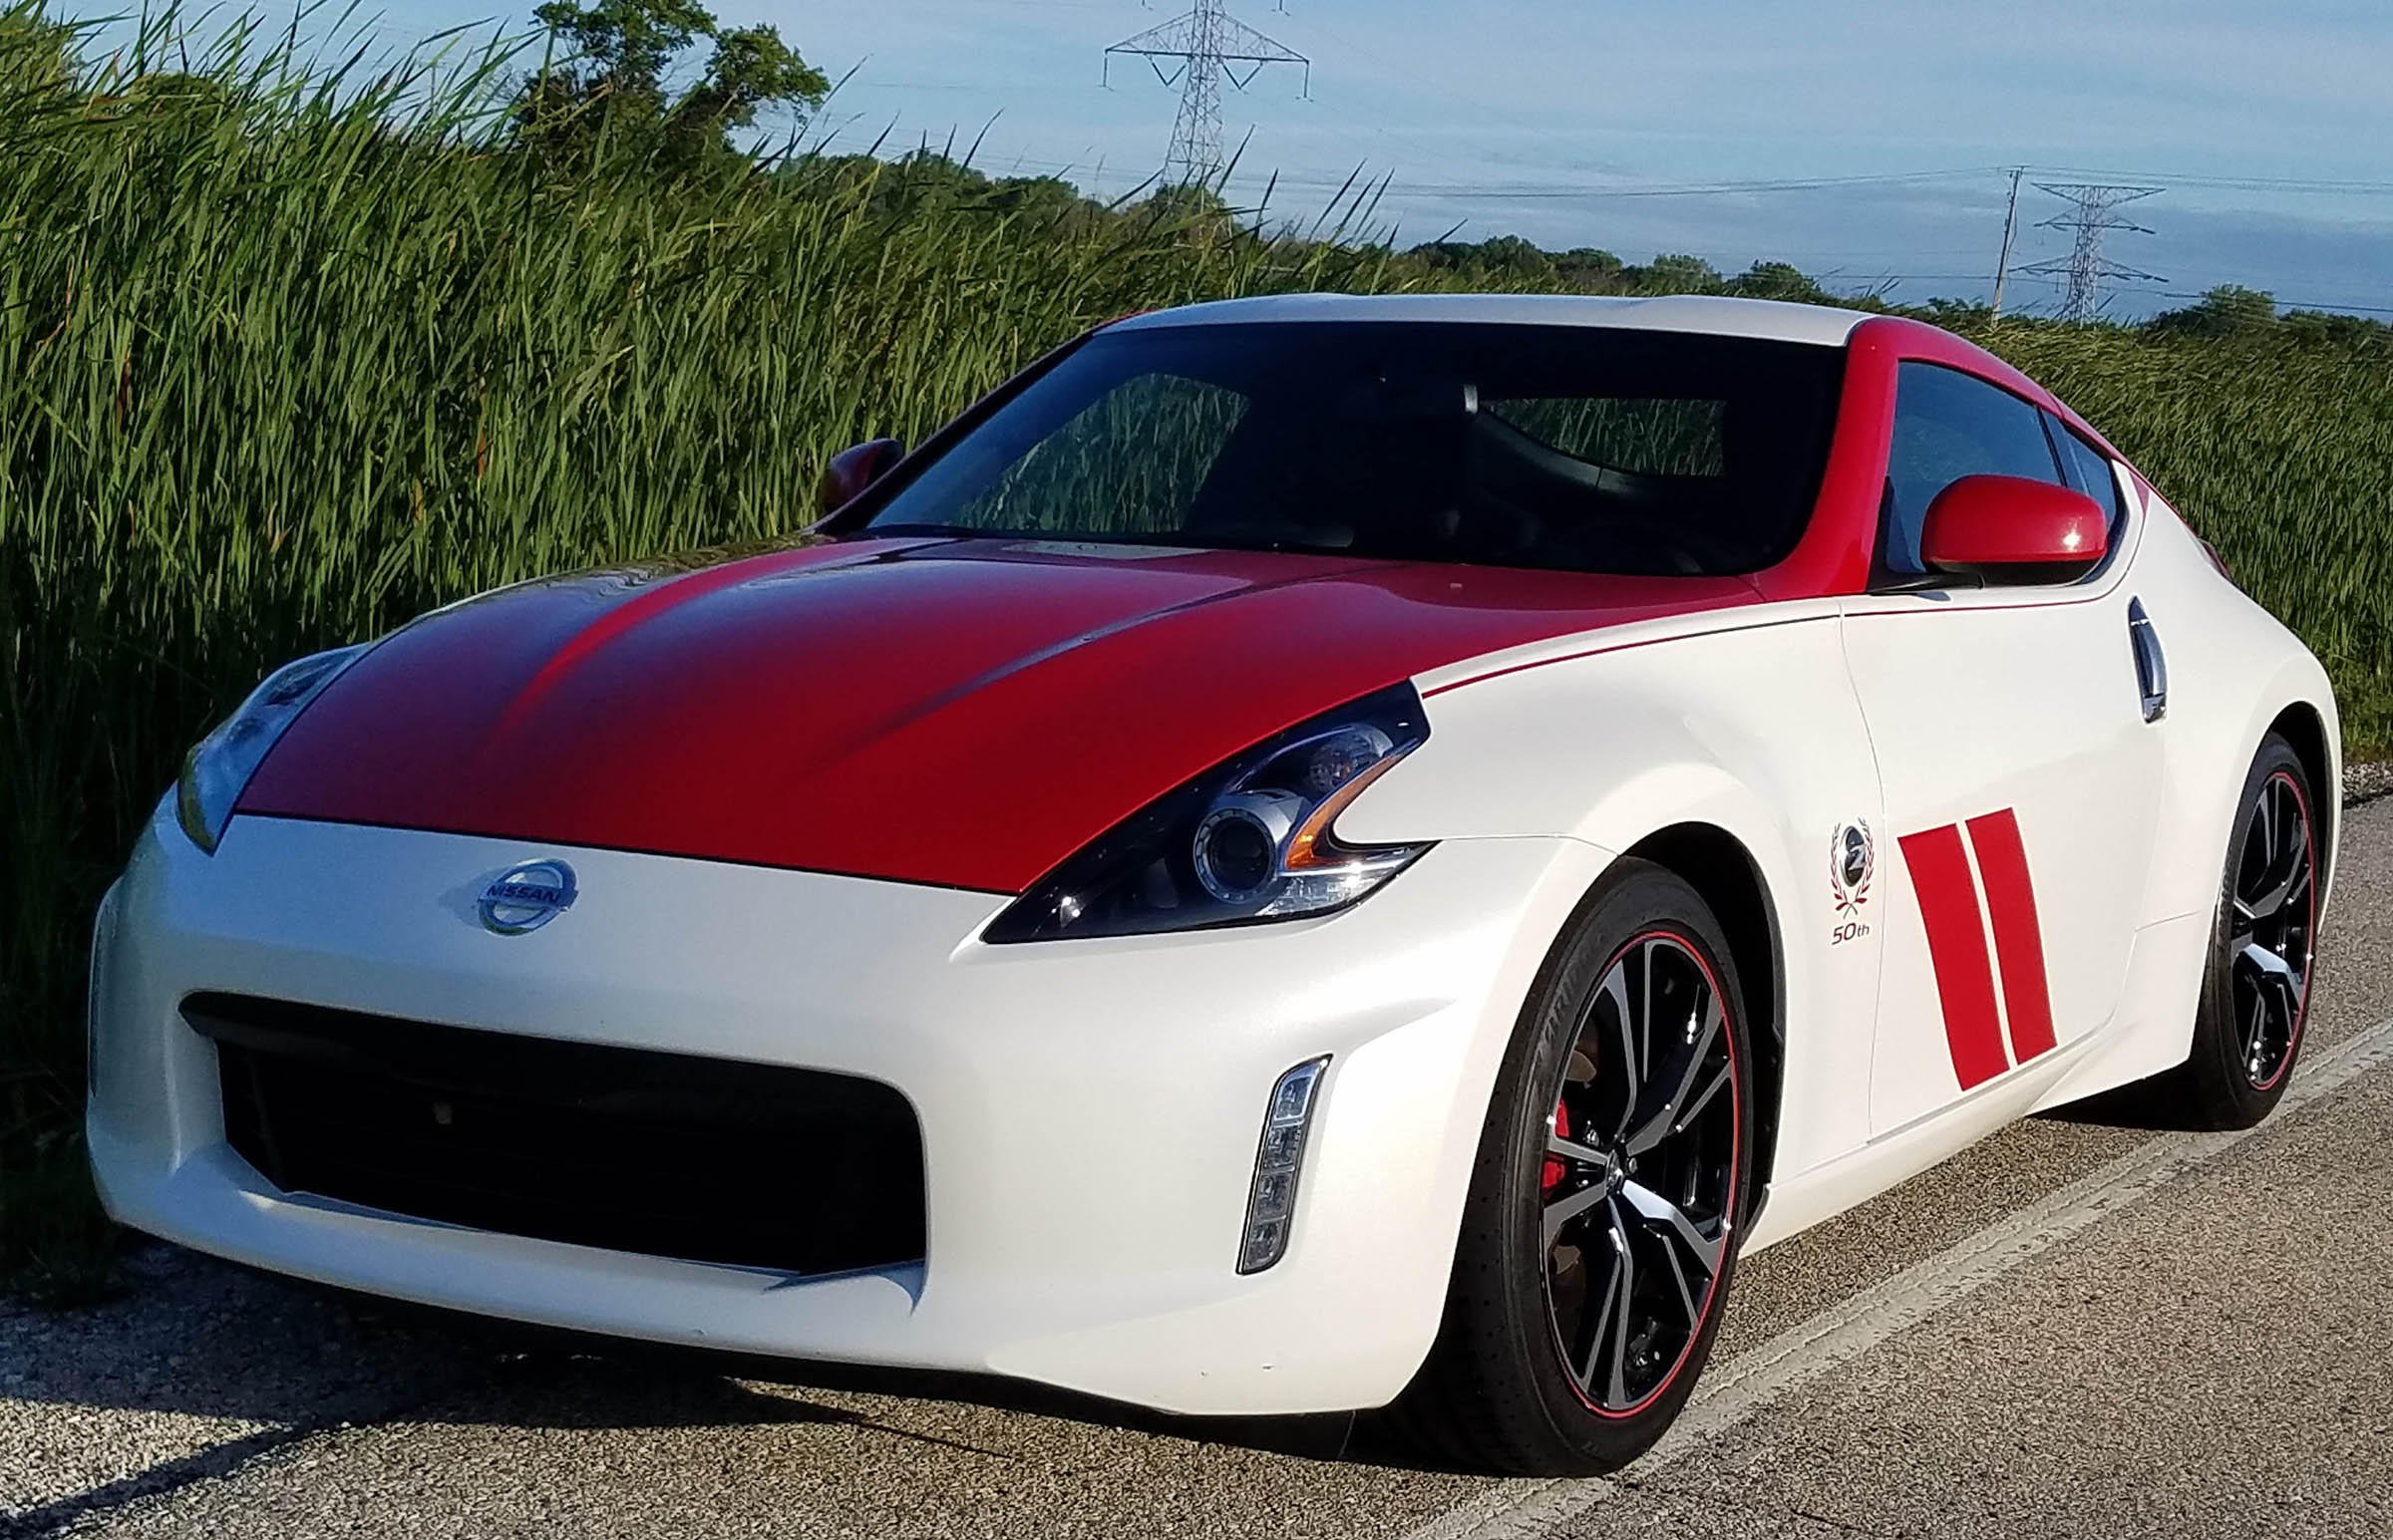 2020 nissan z370 50th anniversary edition review